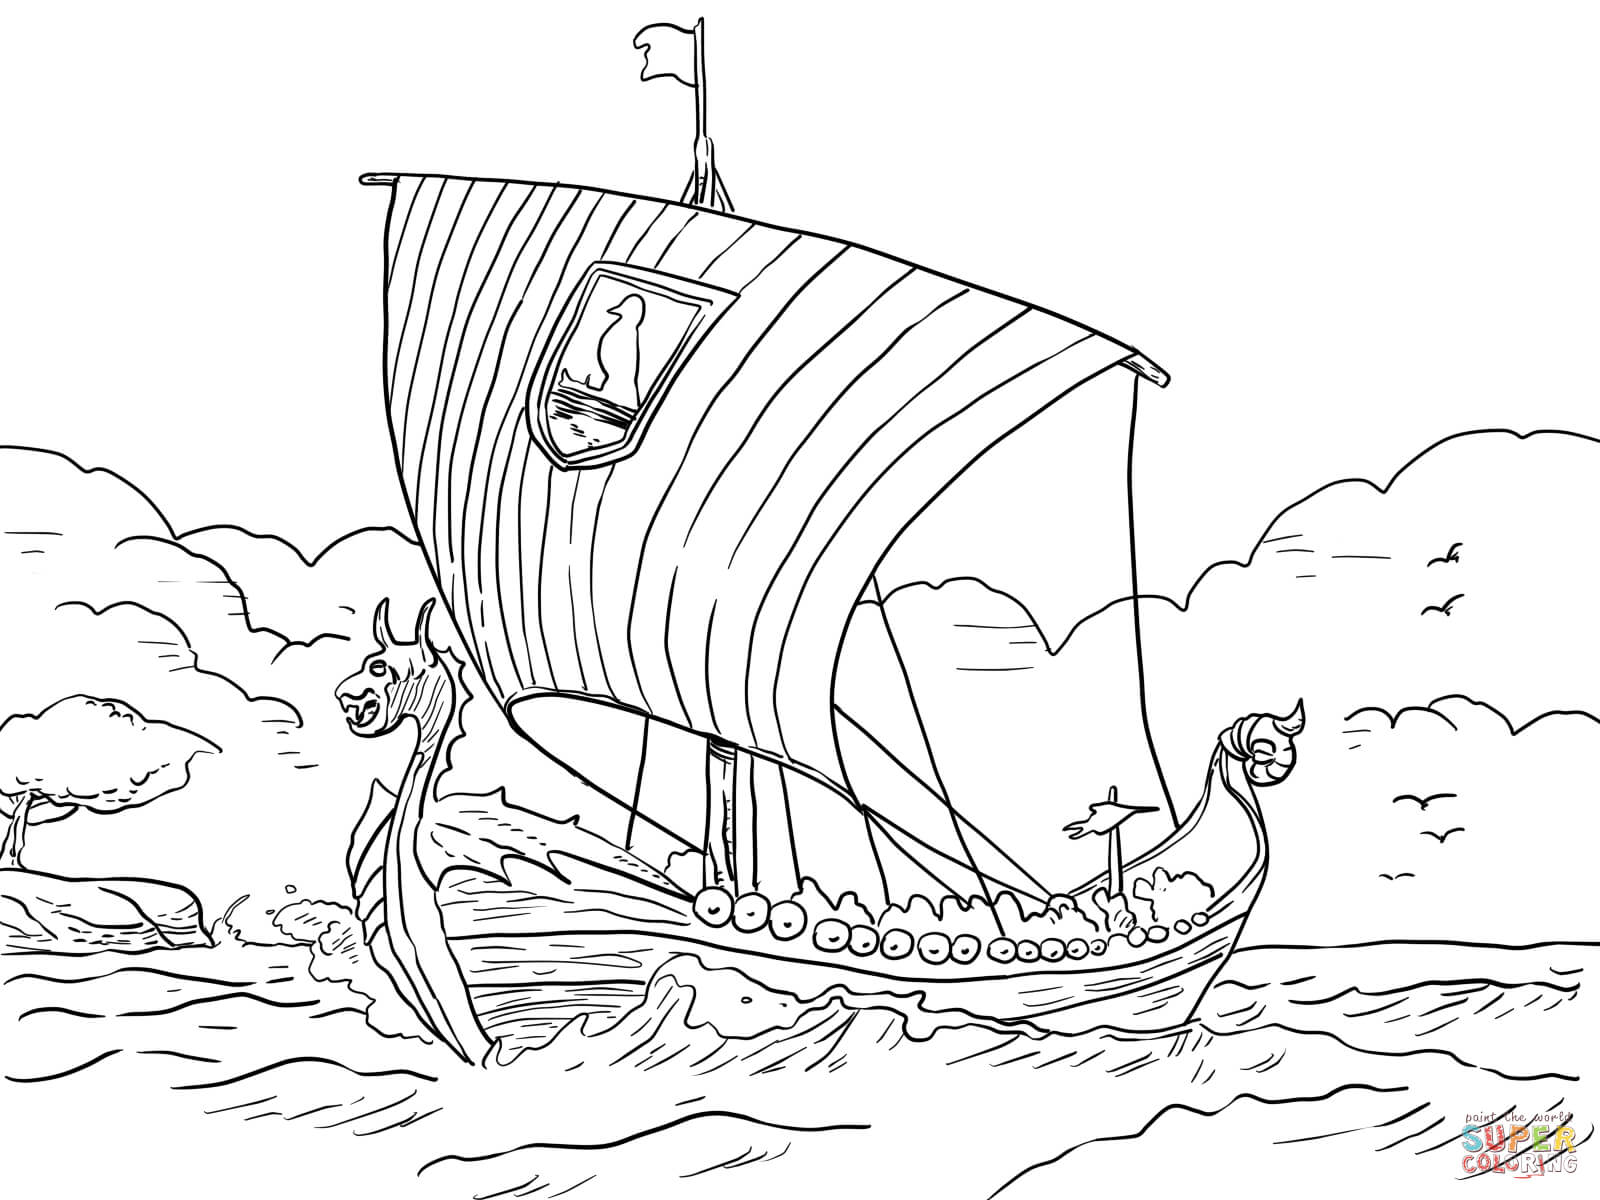 viking coloring page unflinching navy ship coloring page free ships navy viking page coloring